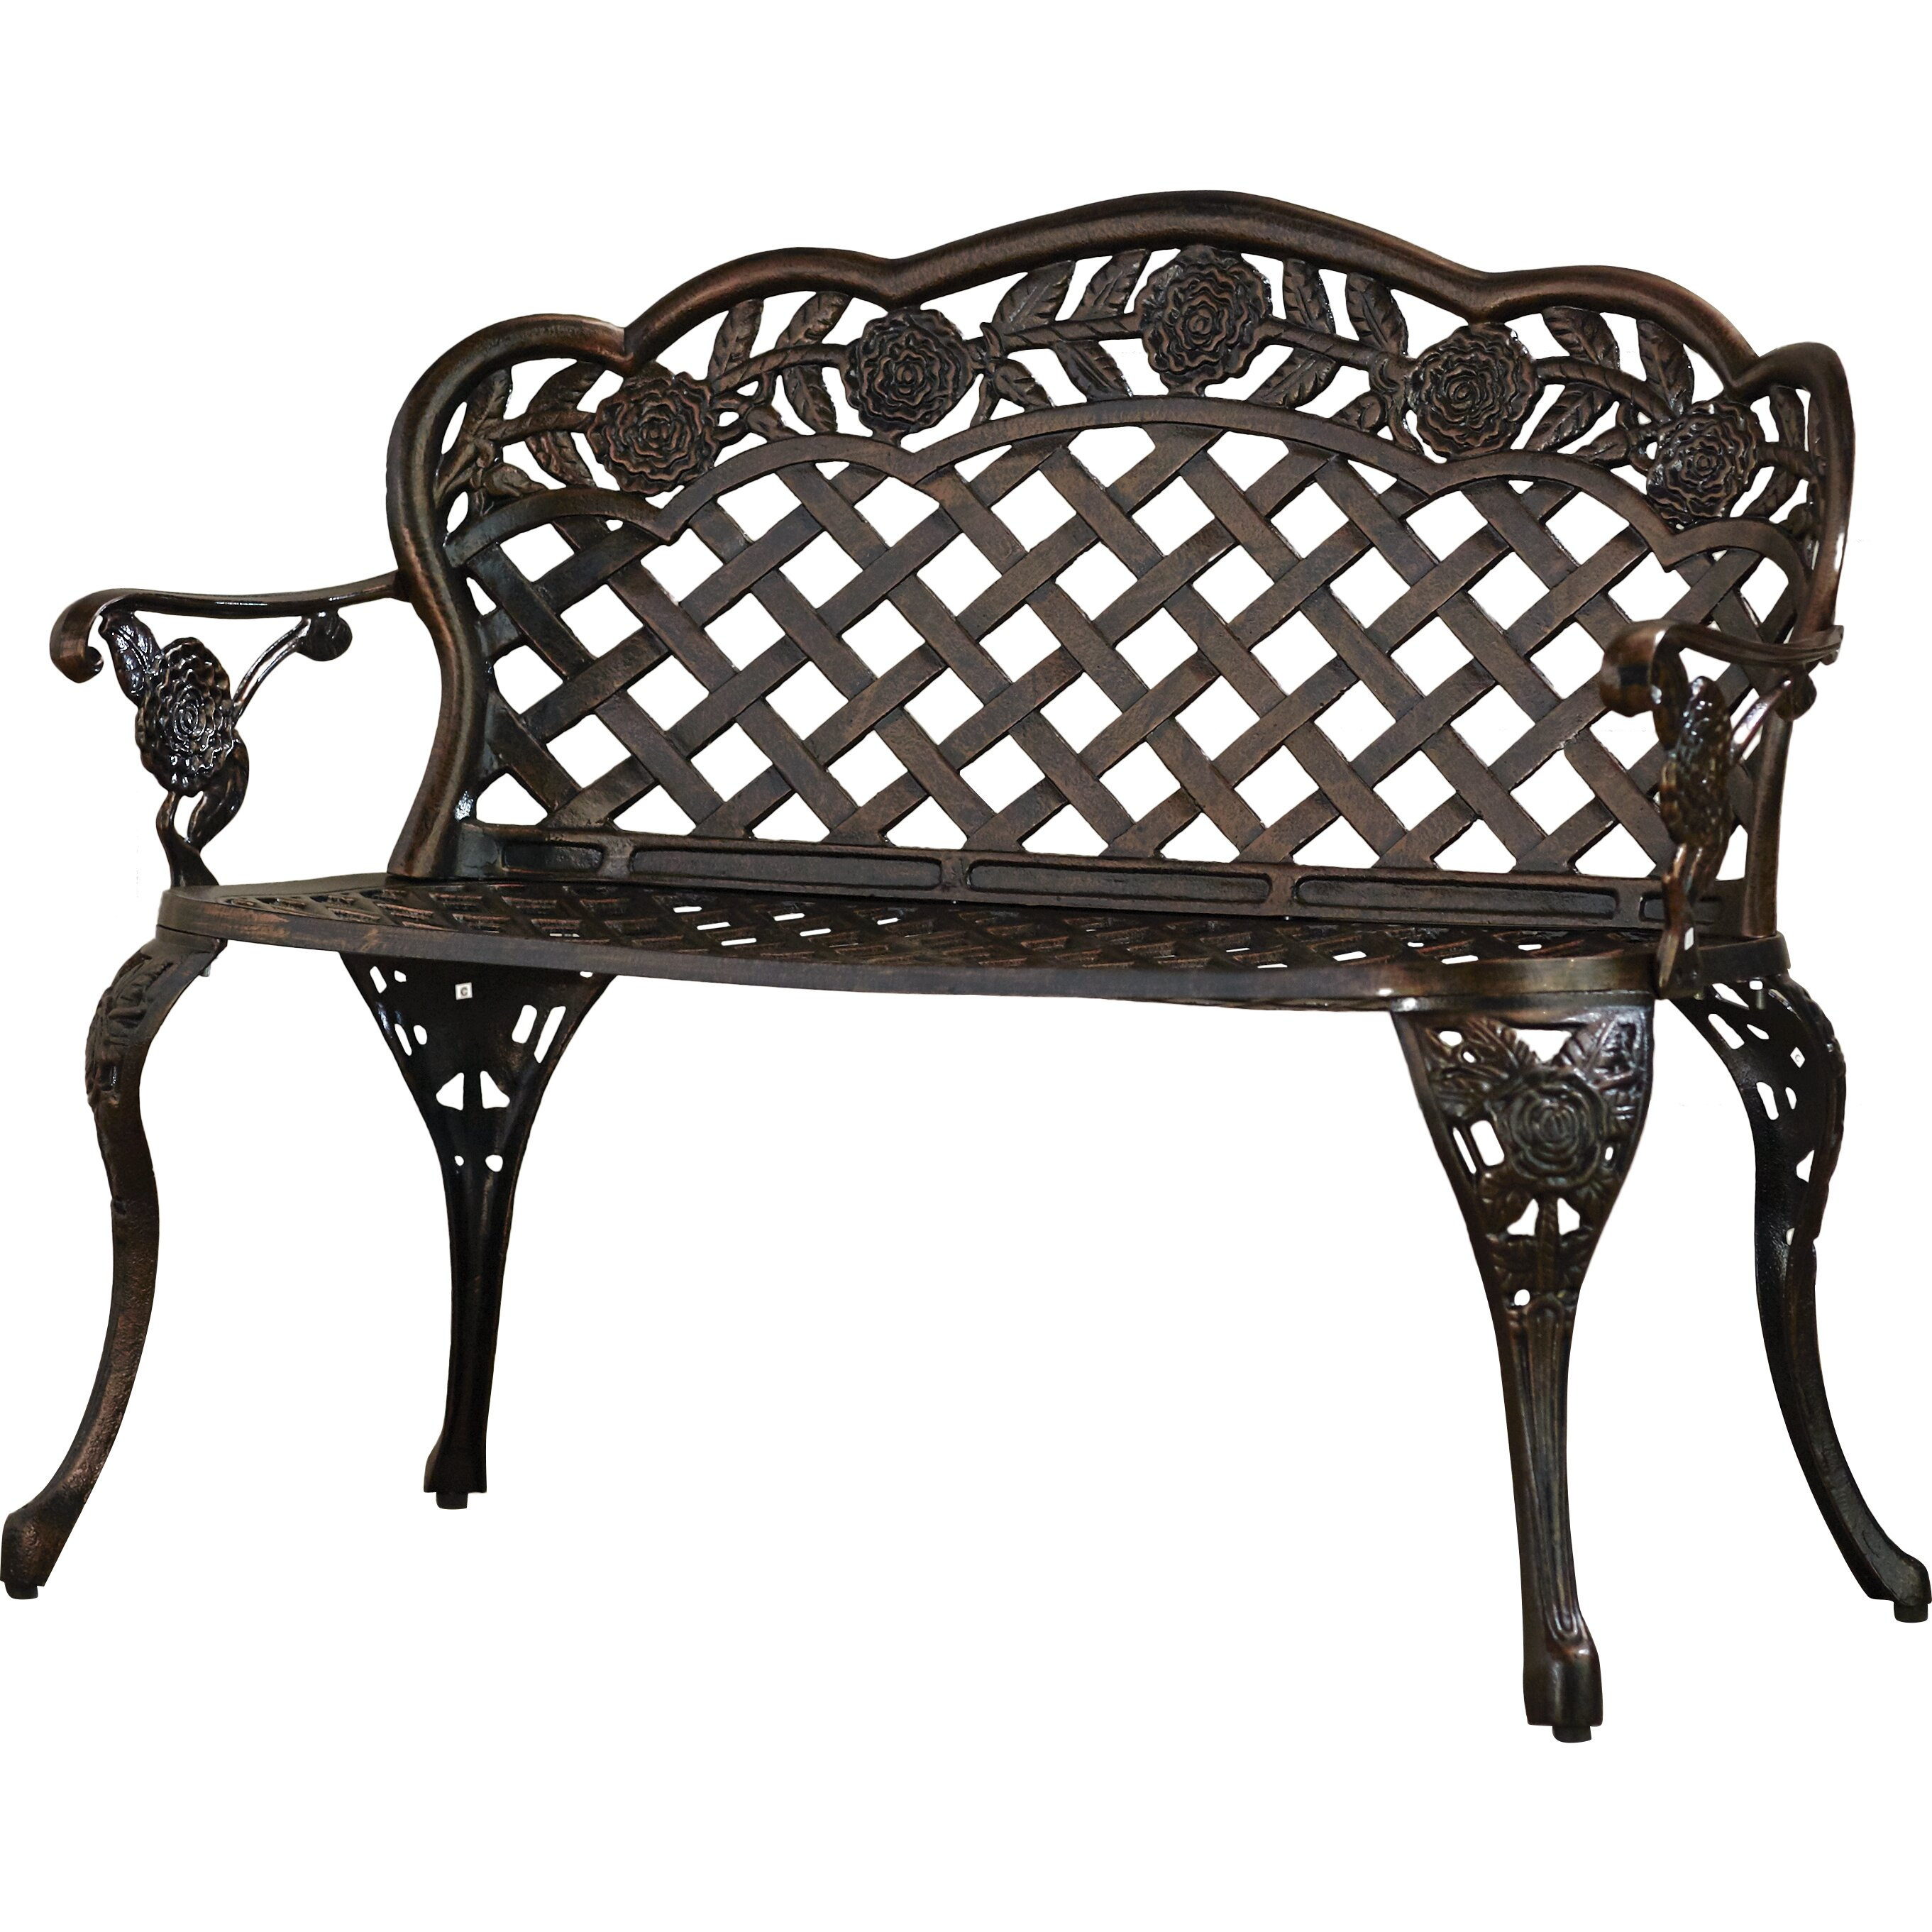 Astoria grand madama cast aluminum garden bench reviews wayfair Aluminum benches